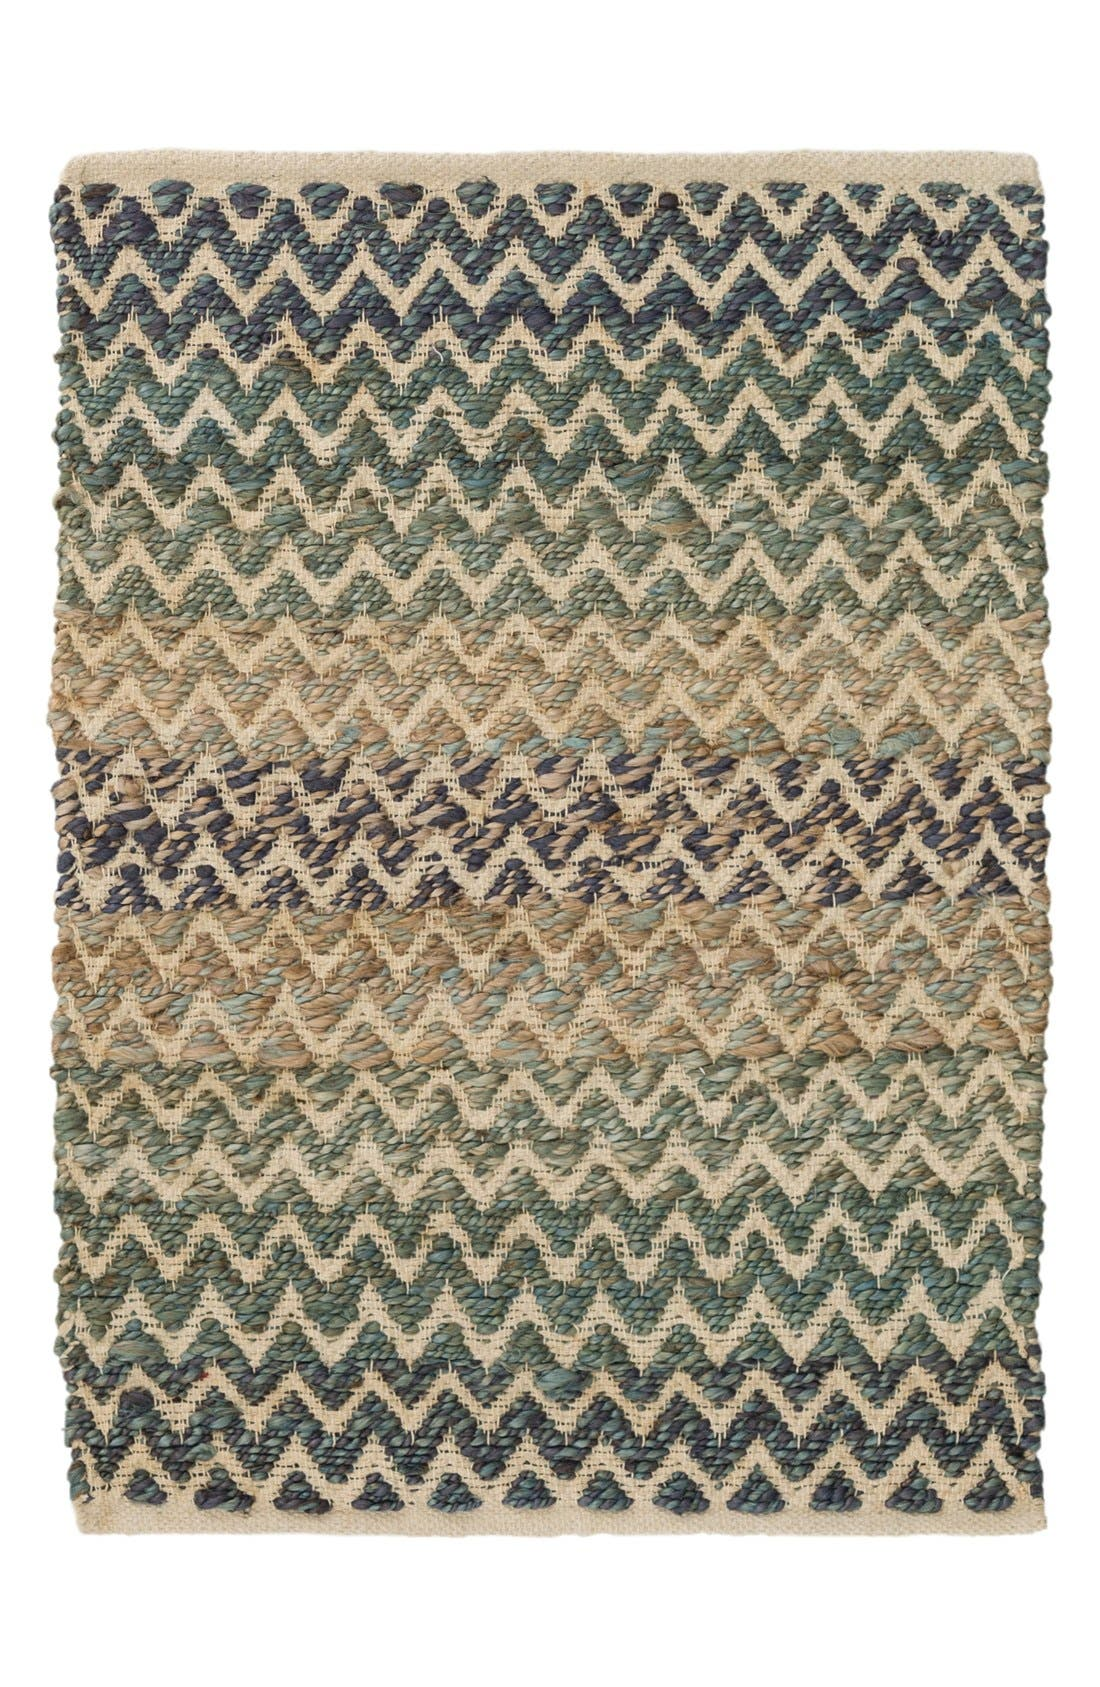 Alternate Image 1 Selected - Dash & Albert Cousteau Handwoven Rug